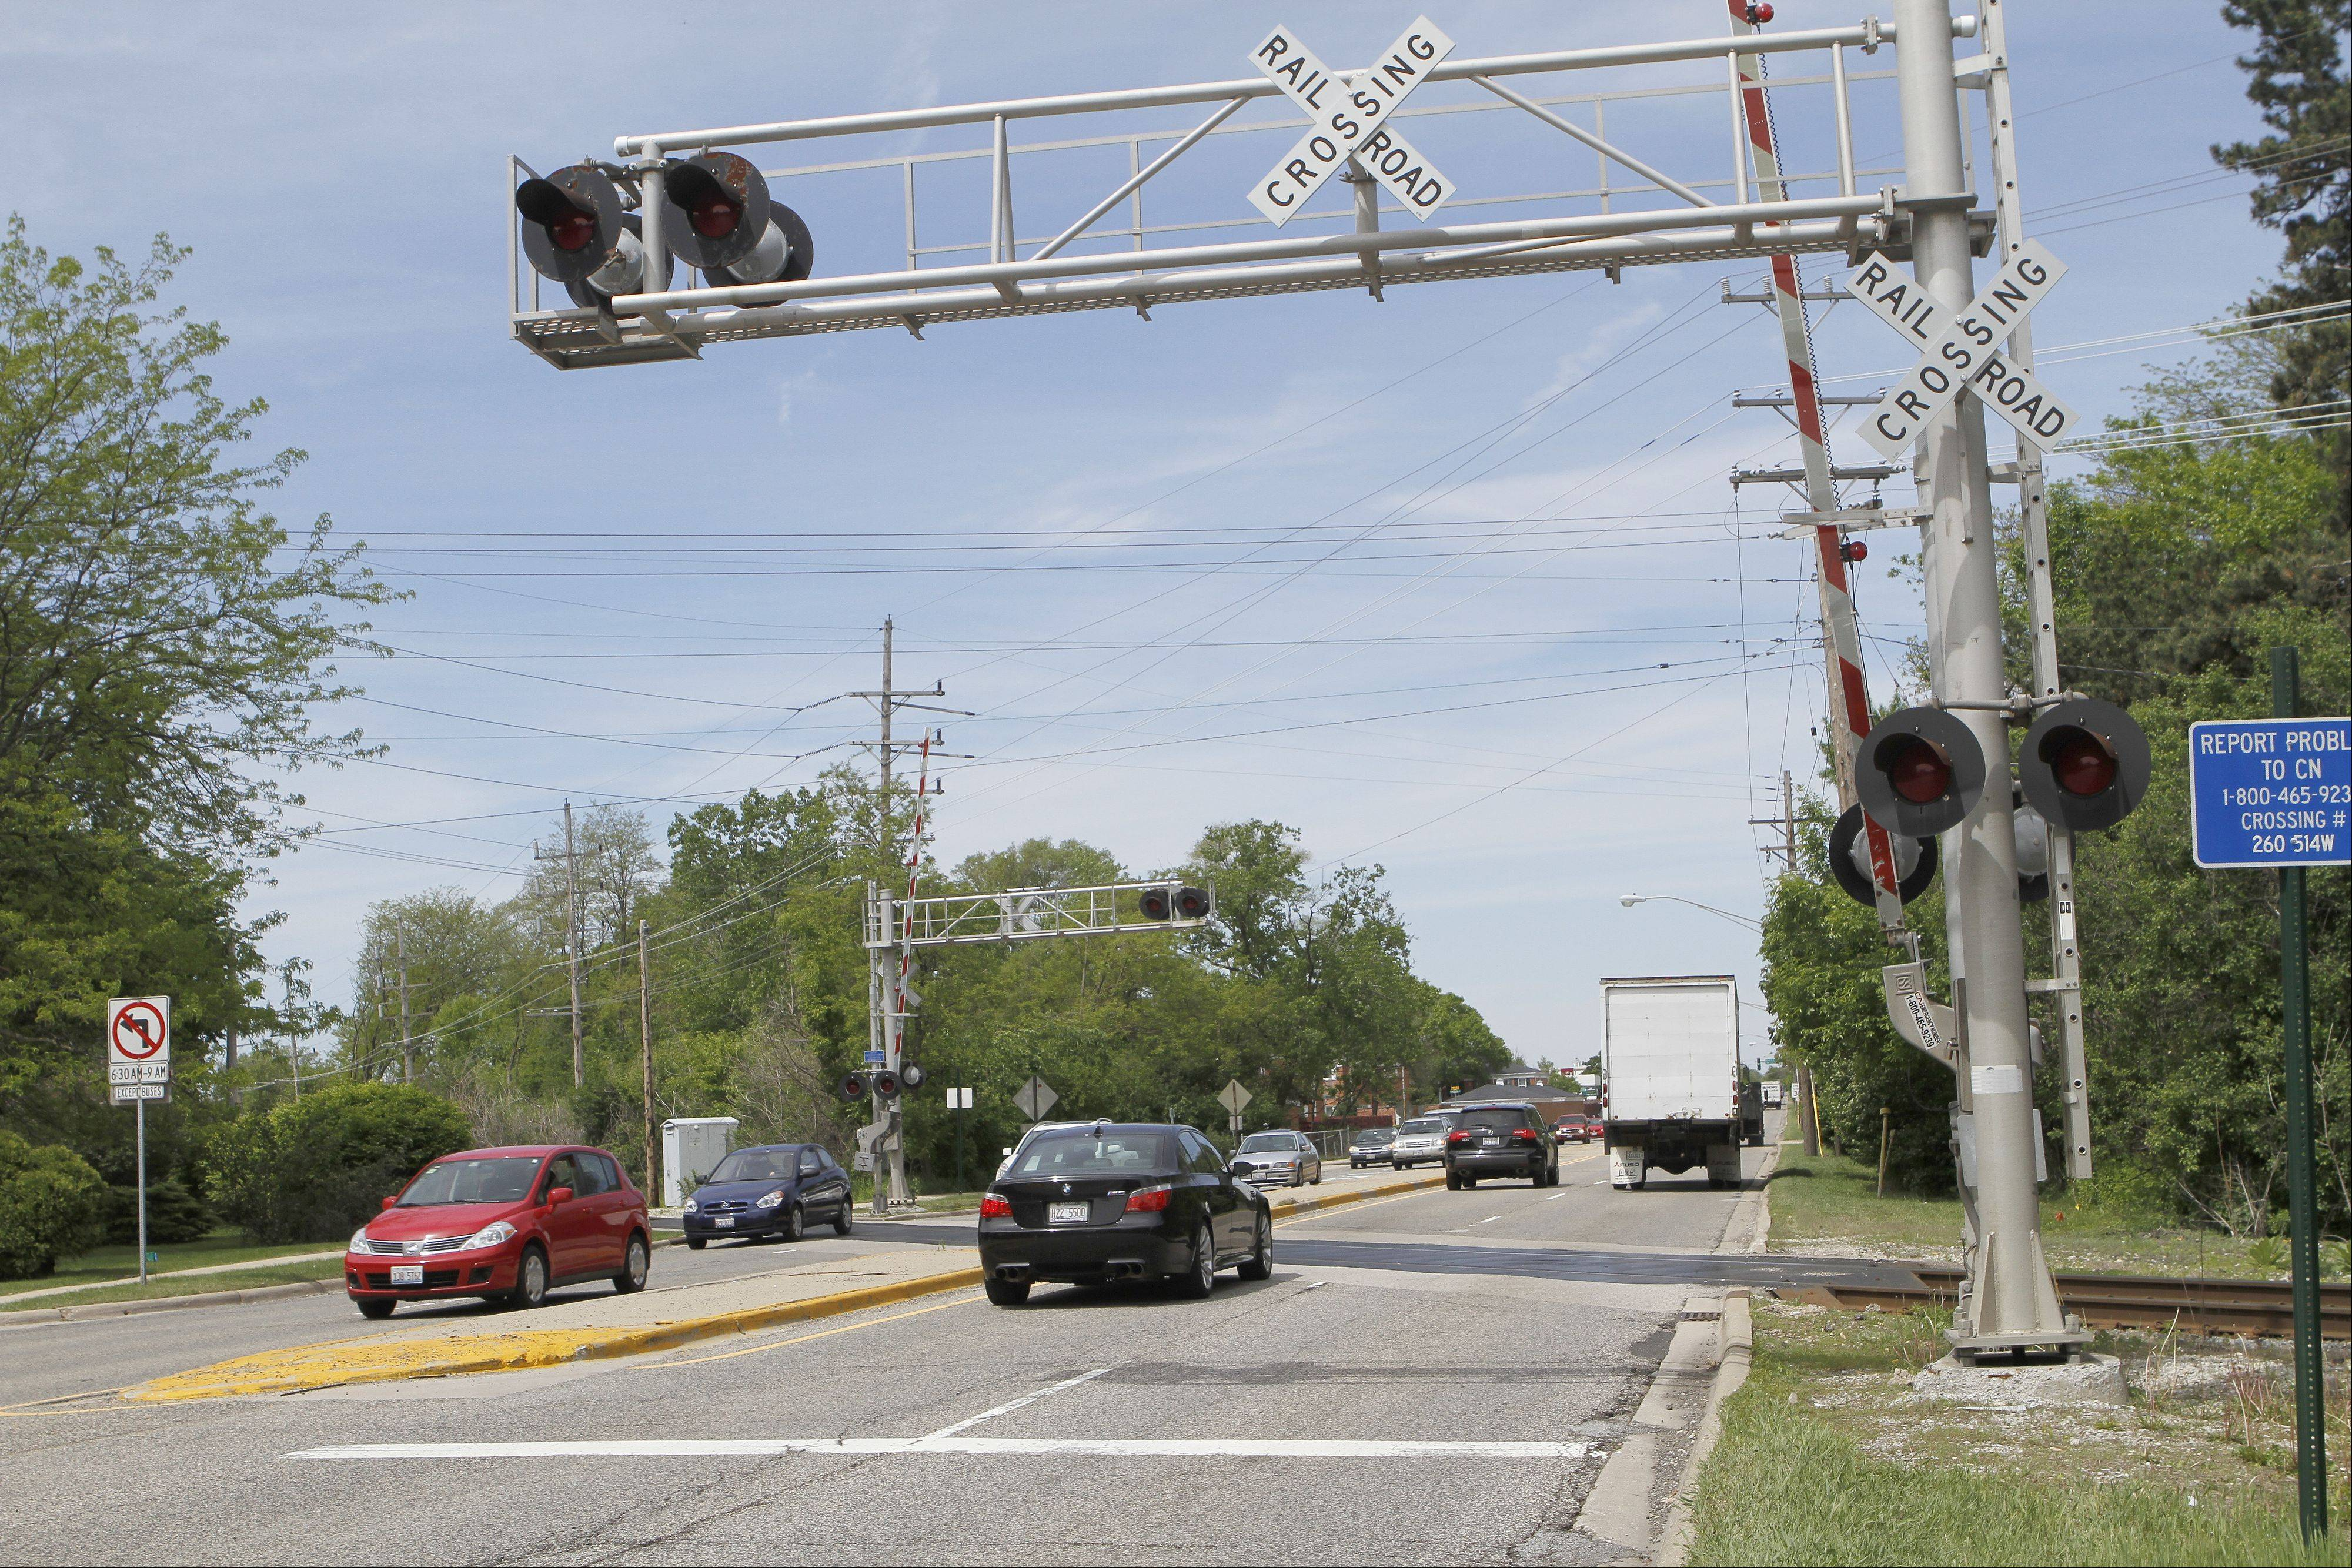 Barrington officials on Monday are expected to authorize an engineering study, a precursor to building an underpass beneath the CN tracks at Route 14.